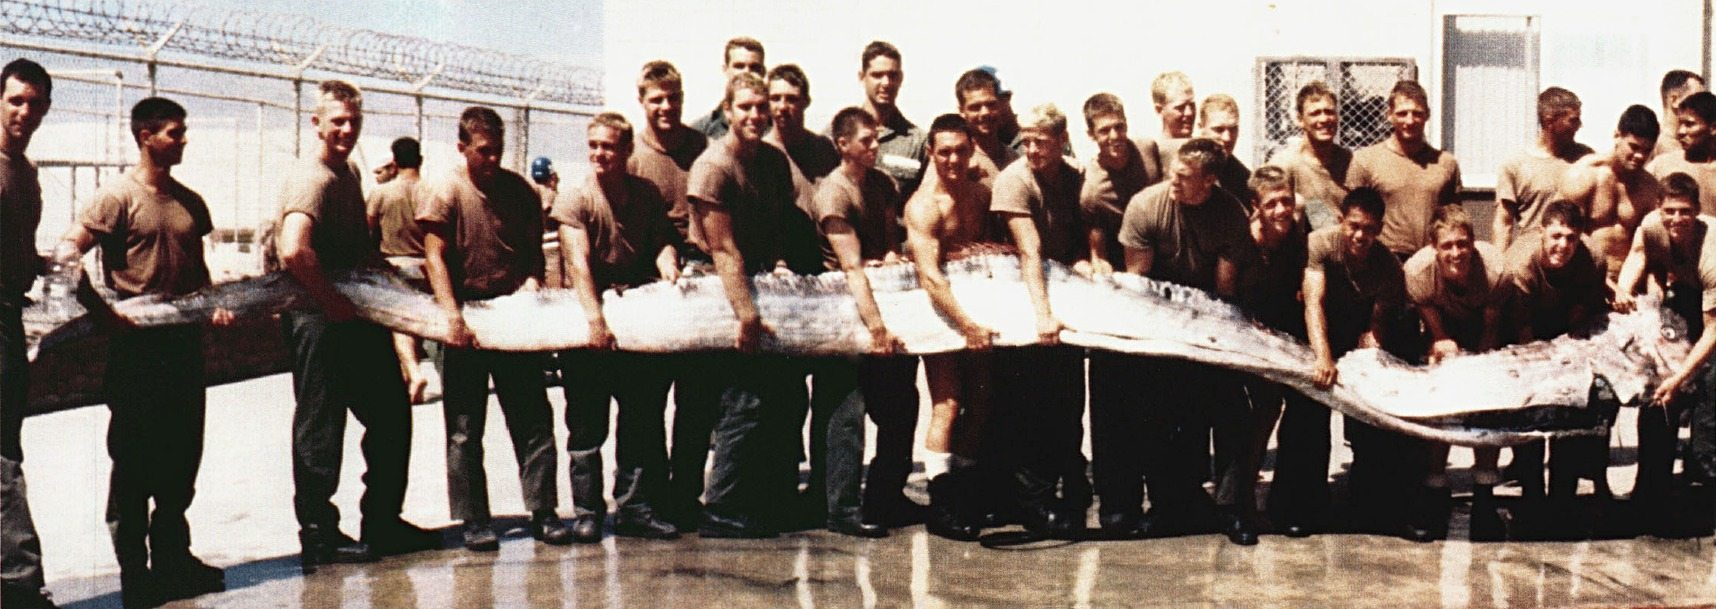 Giant oarfish found on the shore of the Pacific Ocean near San Diego, California. Credit: US Navy